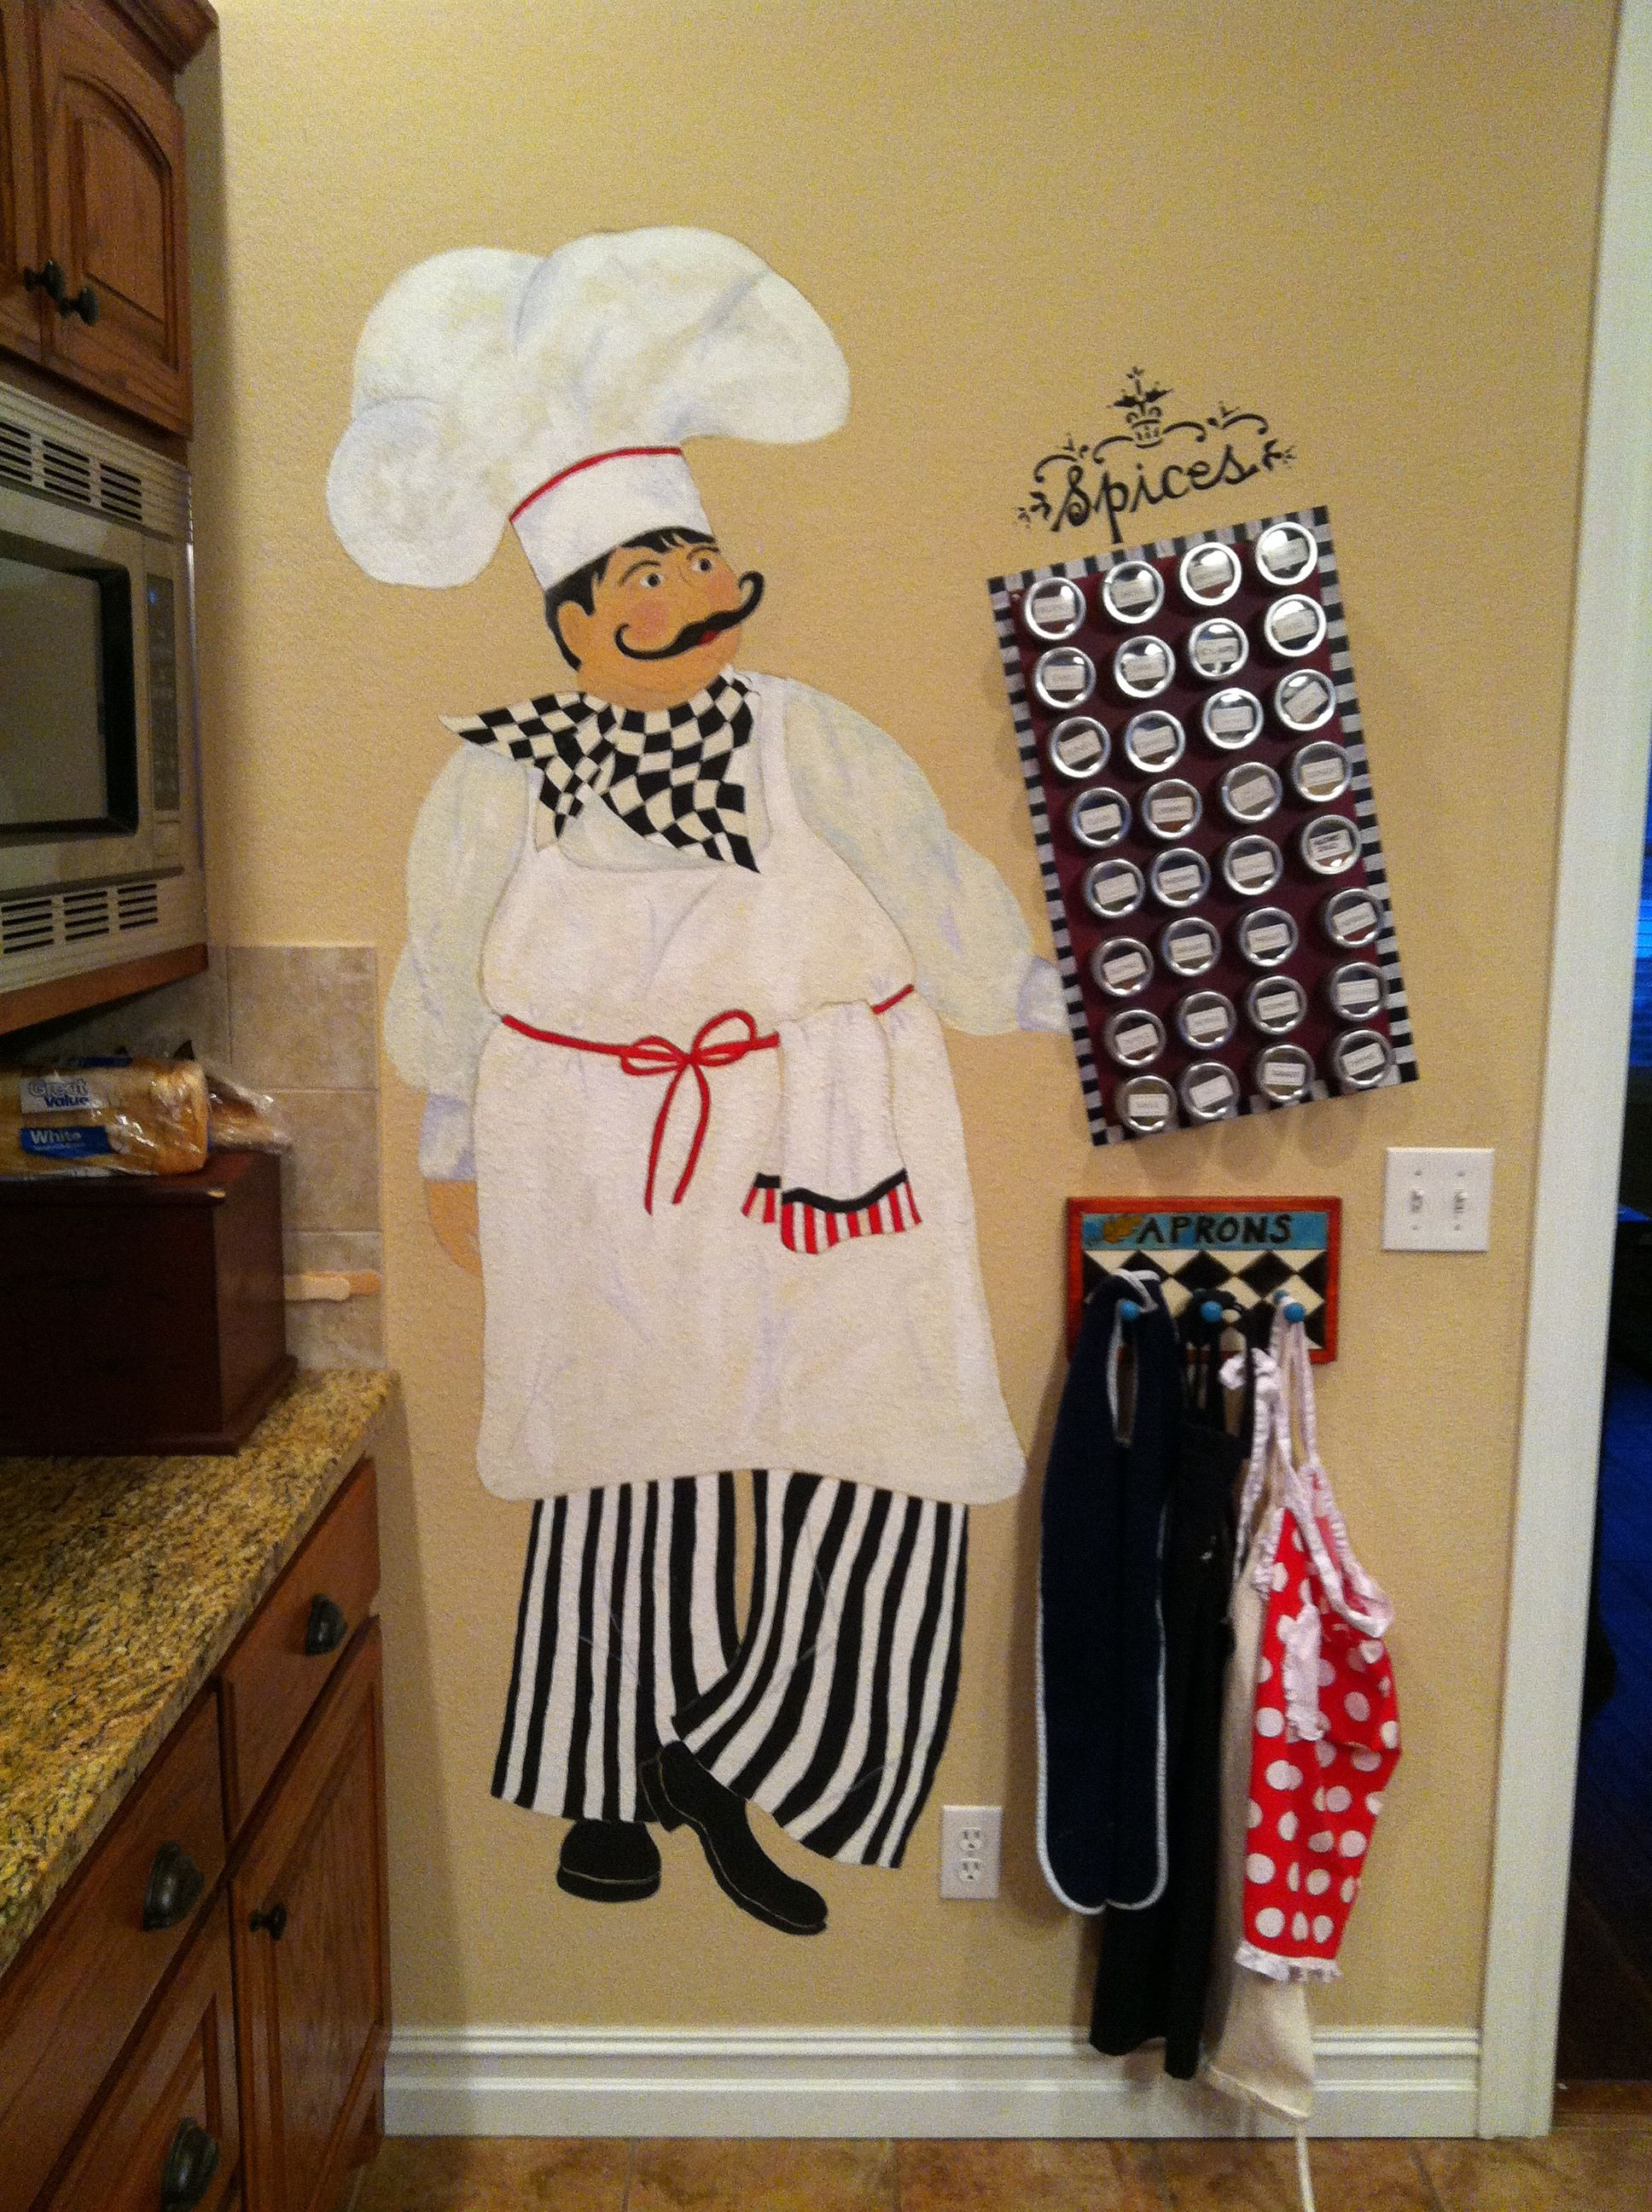 For a fat chef themed kitchen plete with magnetic spice